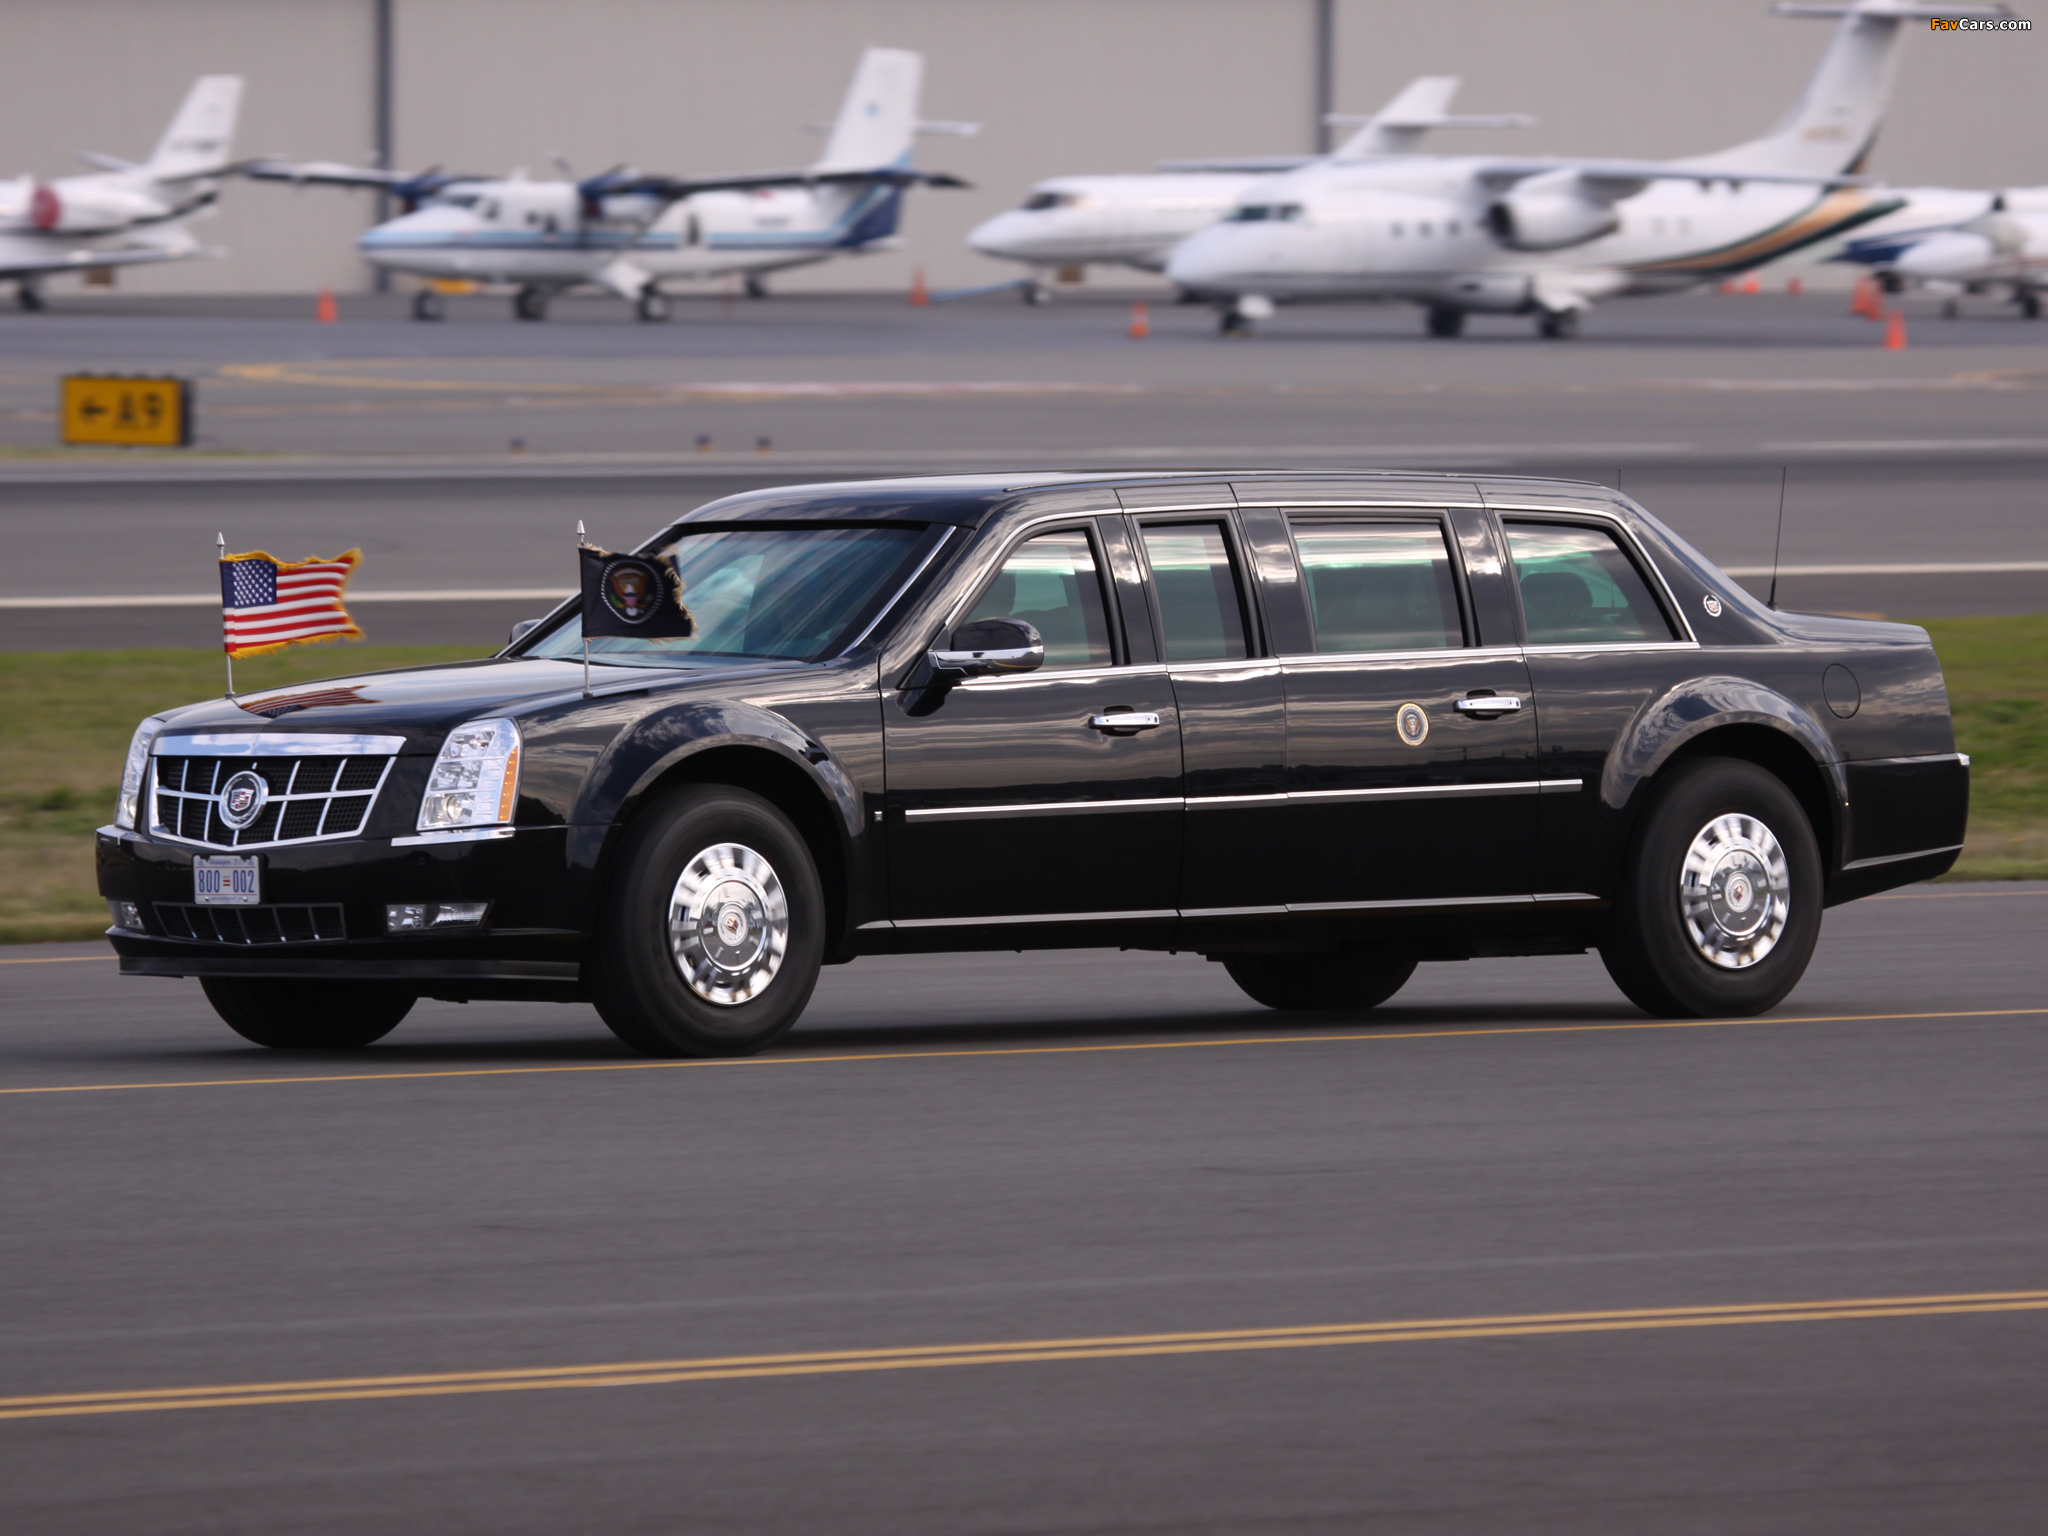 Wallpapers of Cadillac Presidential State Car Wallpaper HD For Iphone